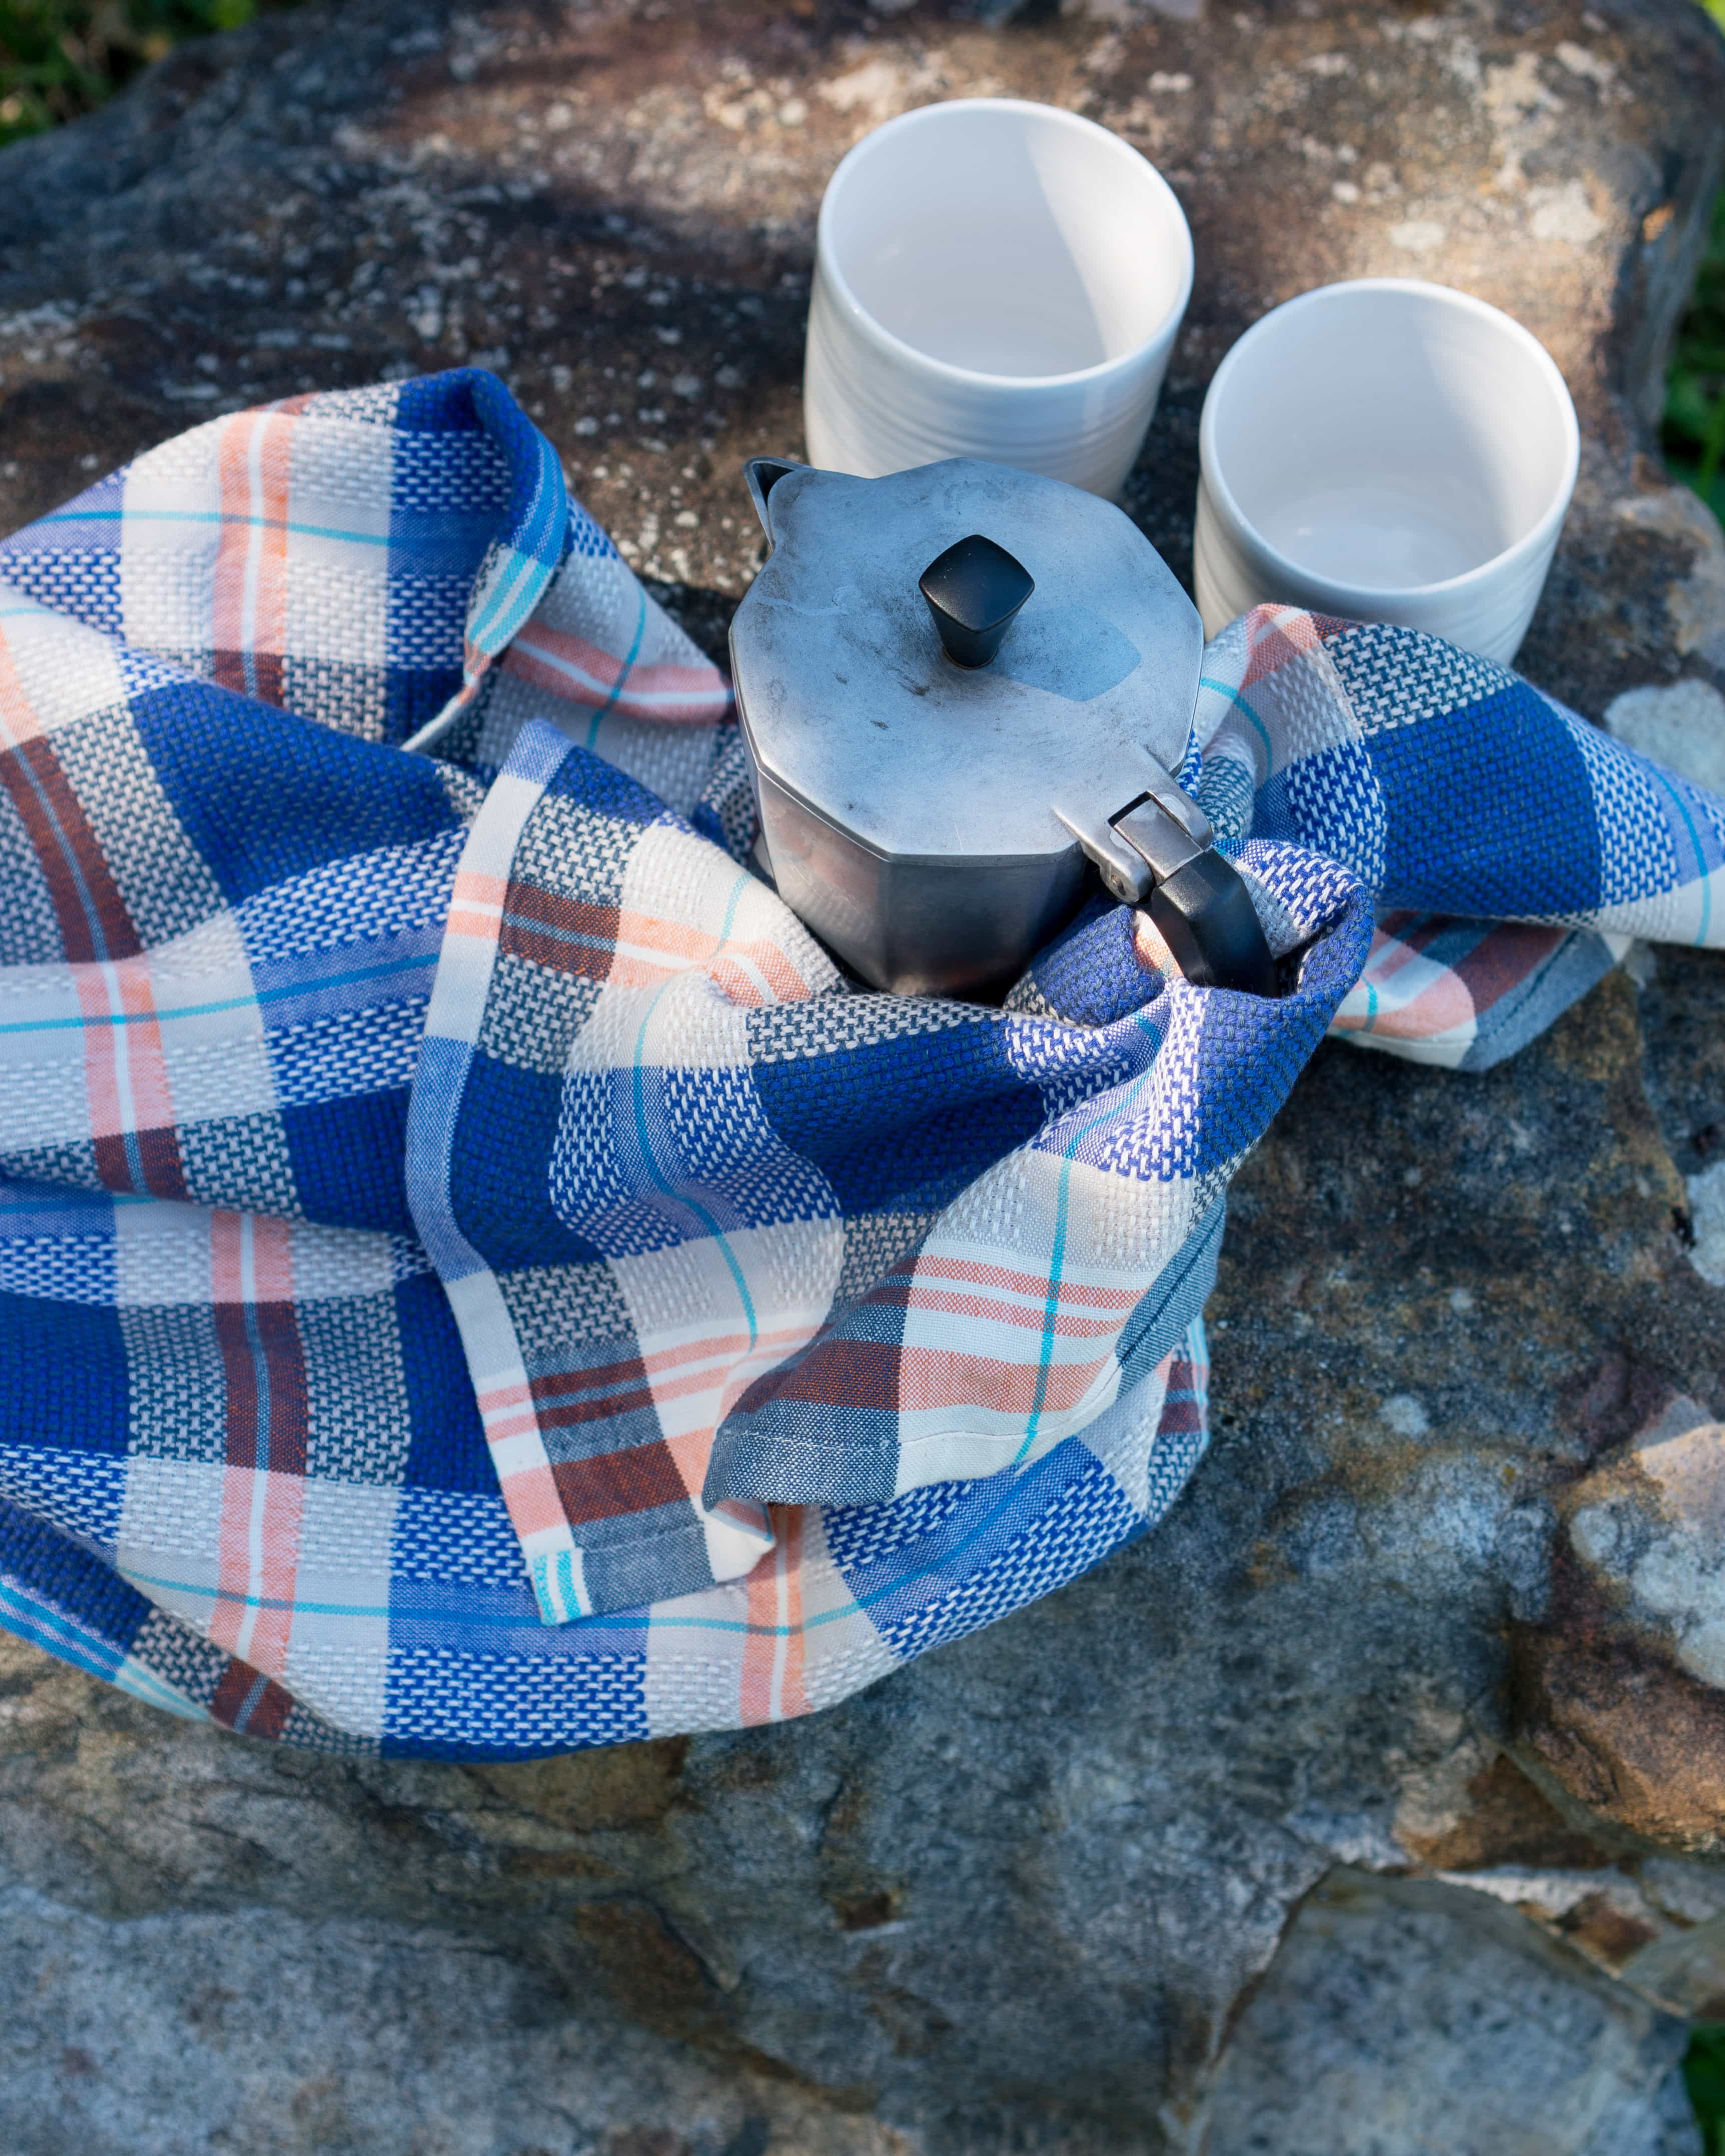 Coffee break on an outdoor adventure - with a Mungo Bilberry Vadoek and coffee pots